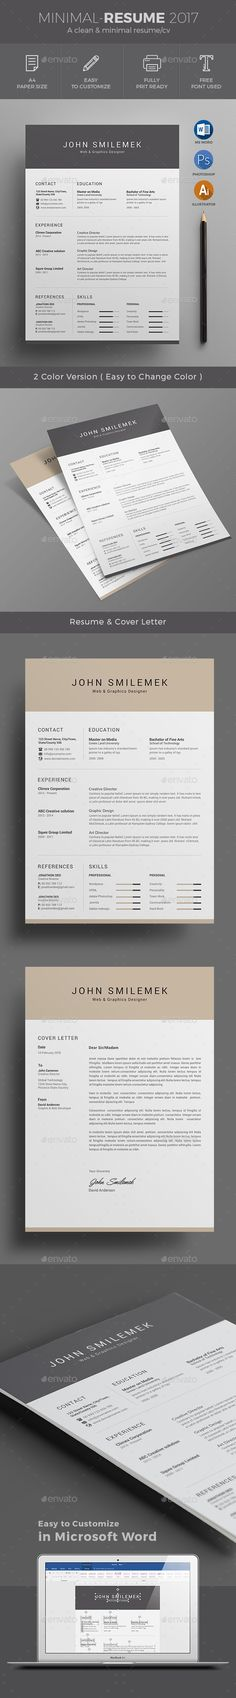 resume resumes stationery resumecv word template is a minimal bold